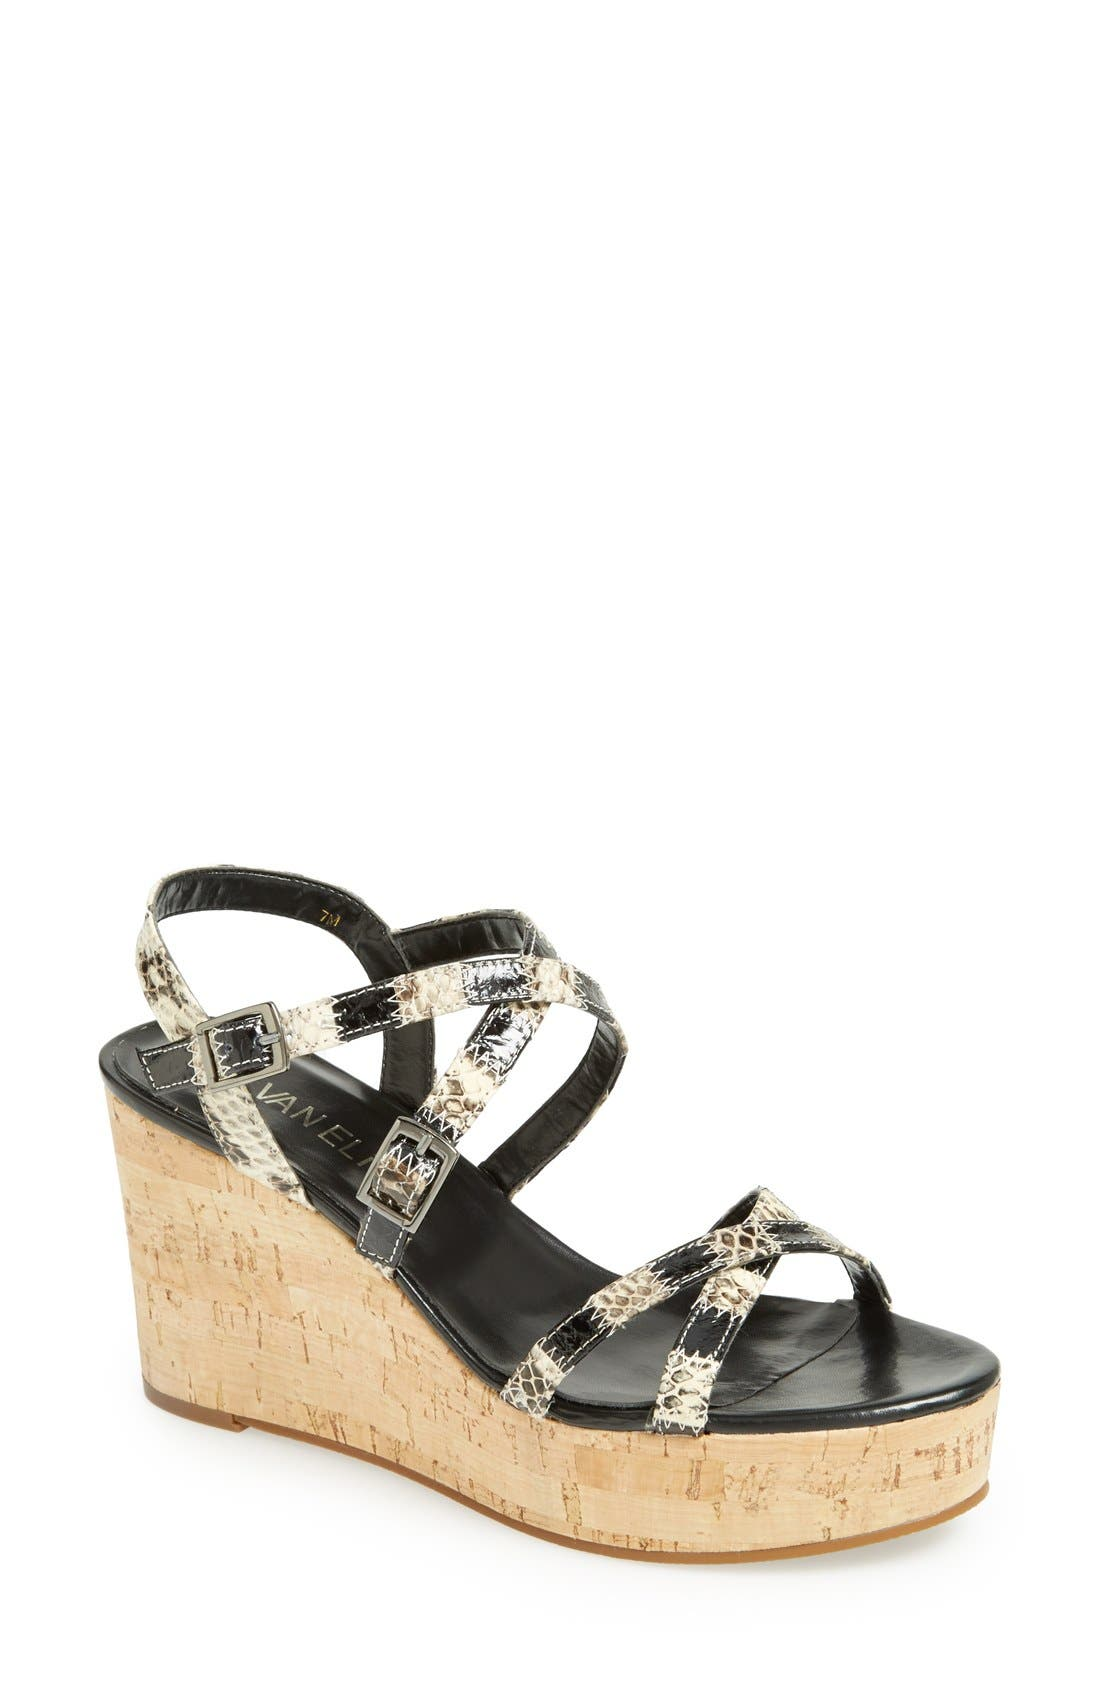 Main Image - VANELi 'Polar' Wedge Sandal